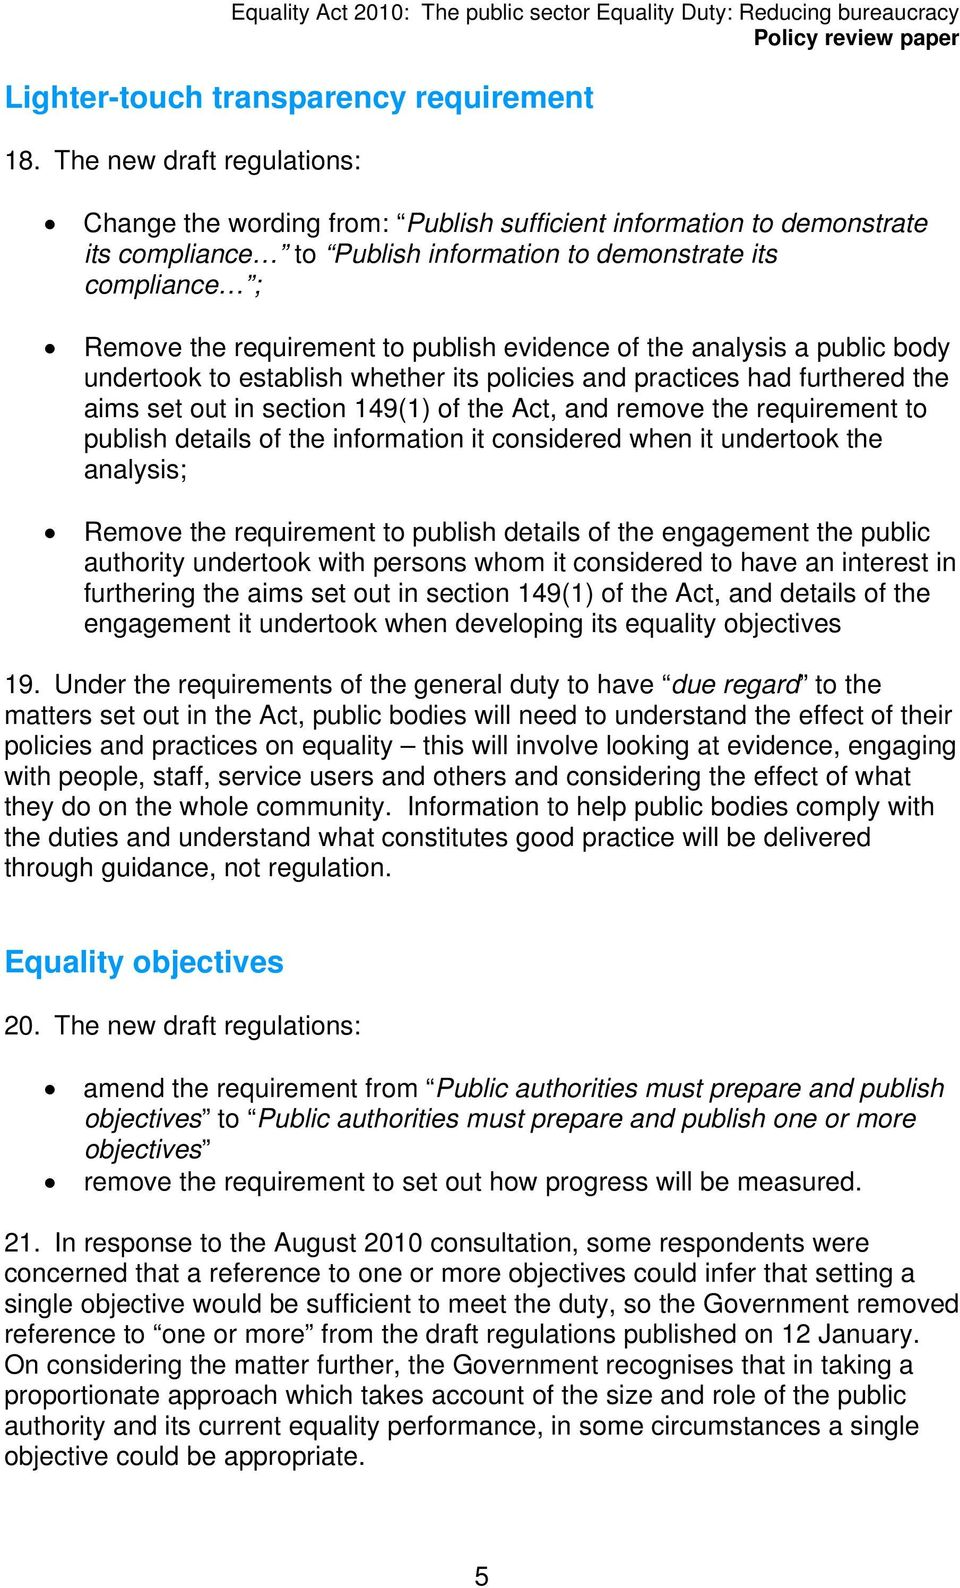 publish evidence of the analysis a public body undertook to establish whether its policies and practices had furthered the aims set out in section 149(1) of the Act, and remove the requirement to